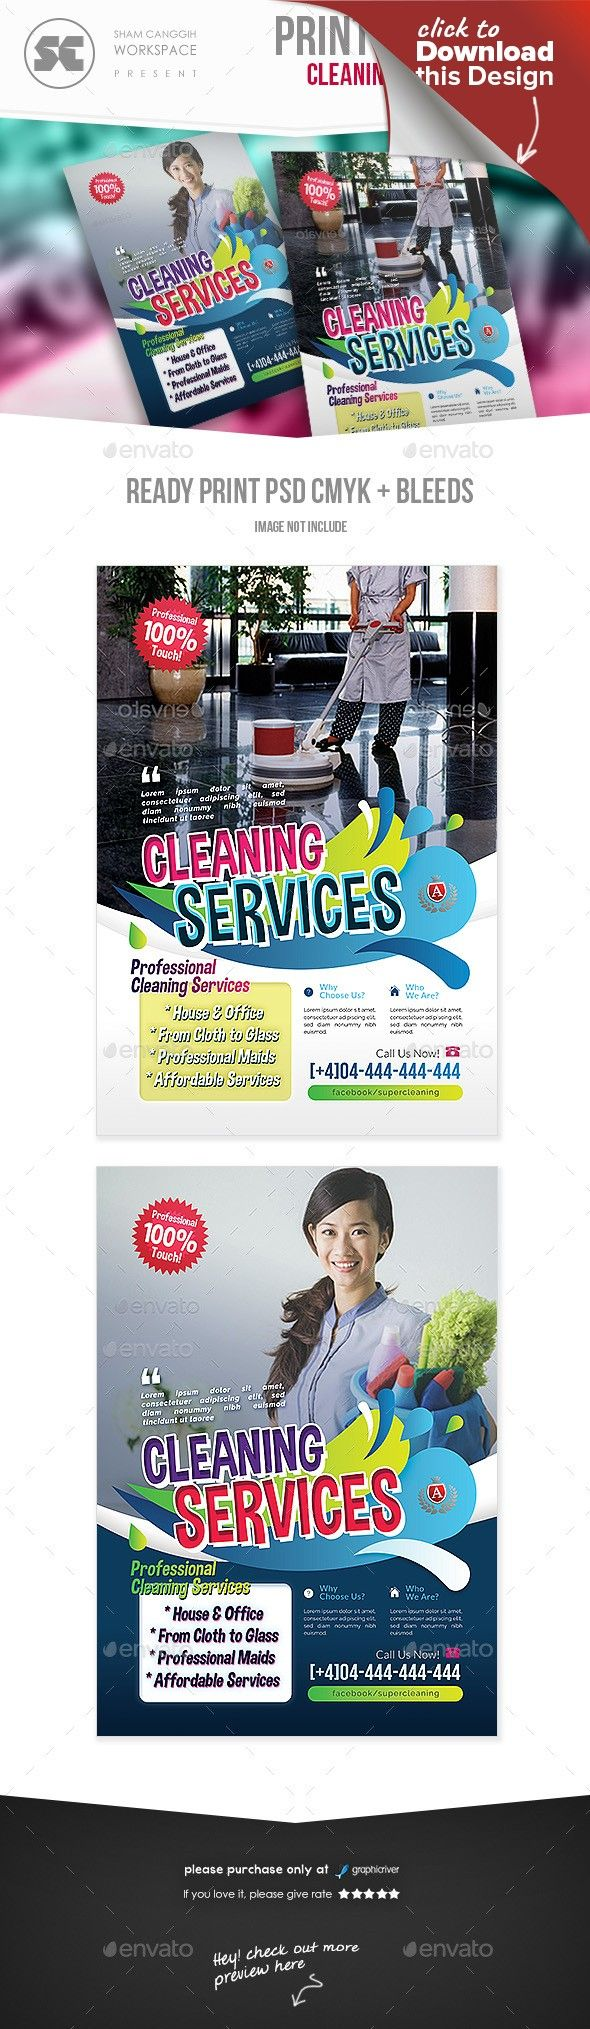 multipurpose cleaning services flyer flyers templates pinterest washing windows flyer template and magazine ads